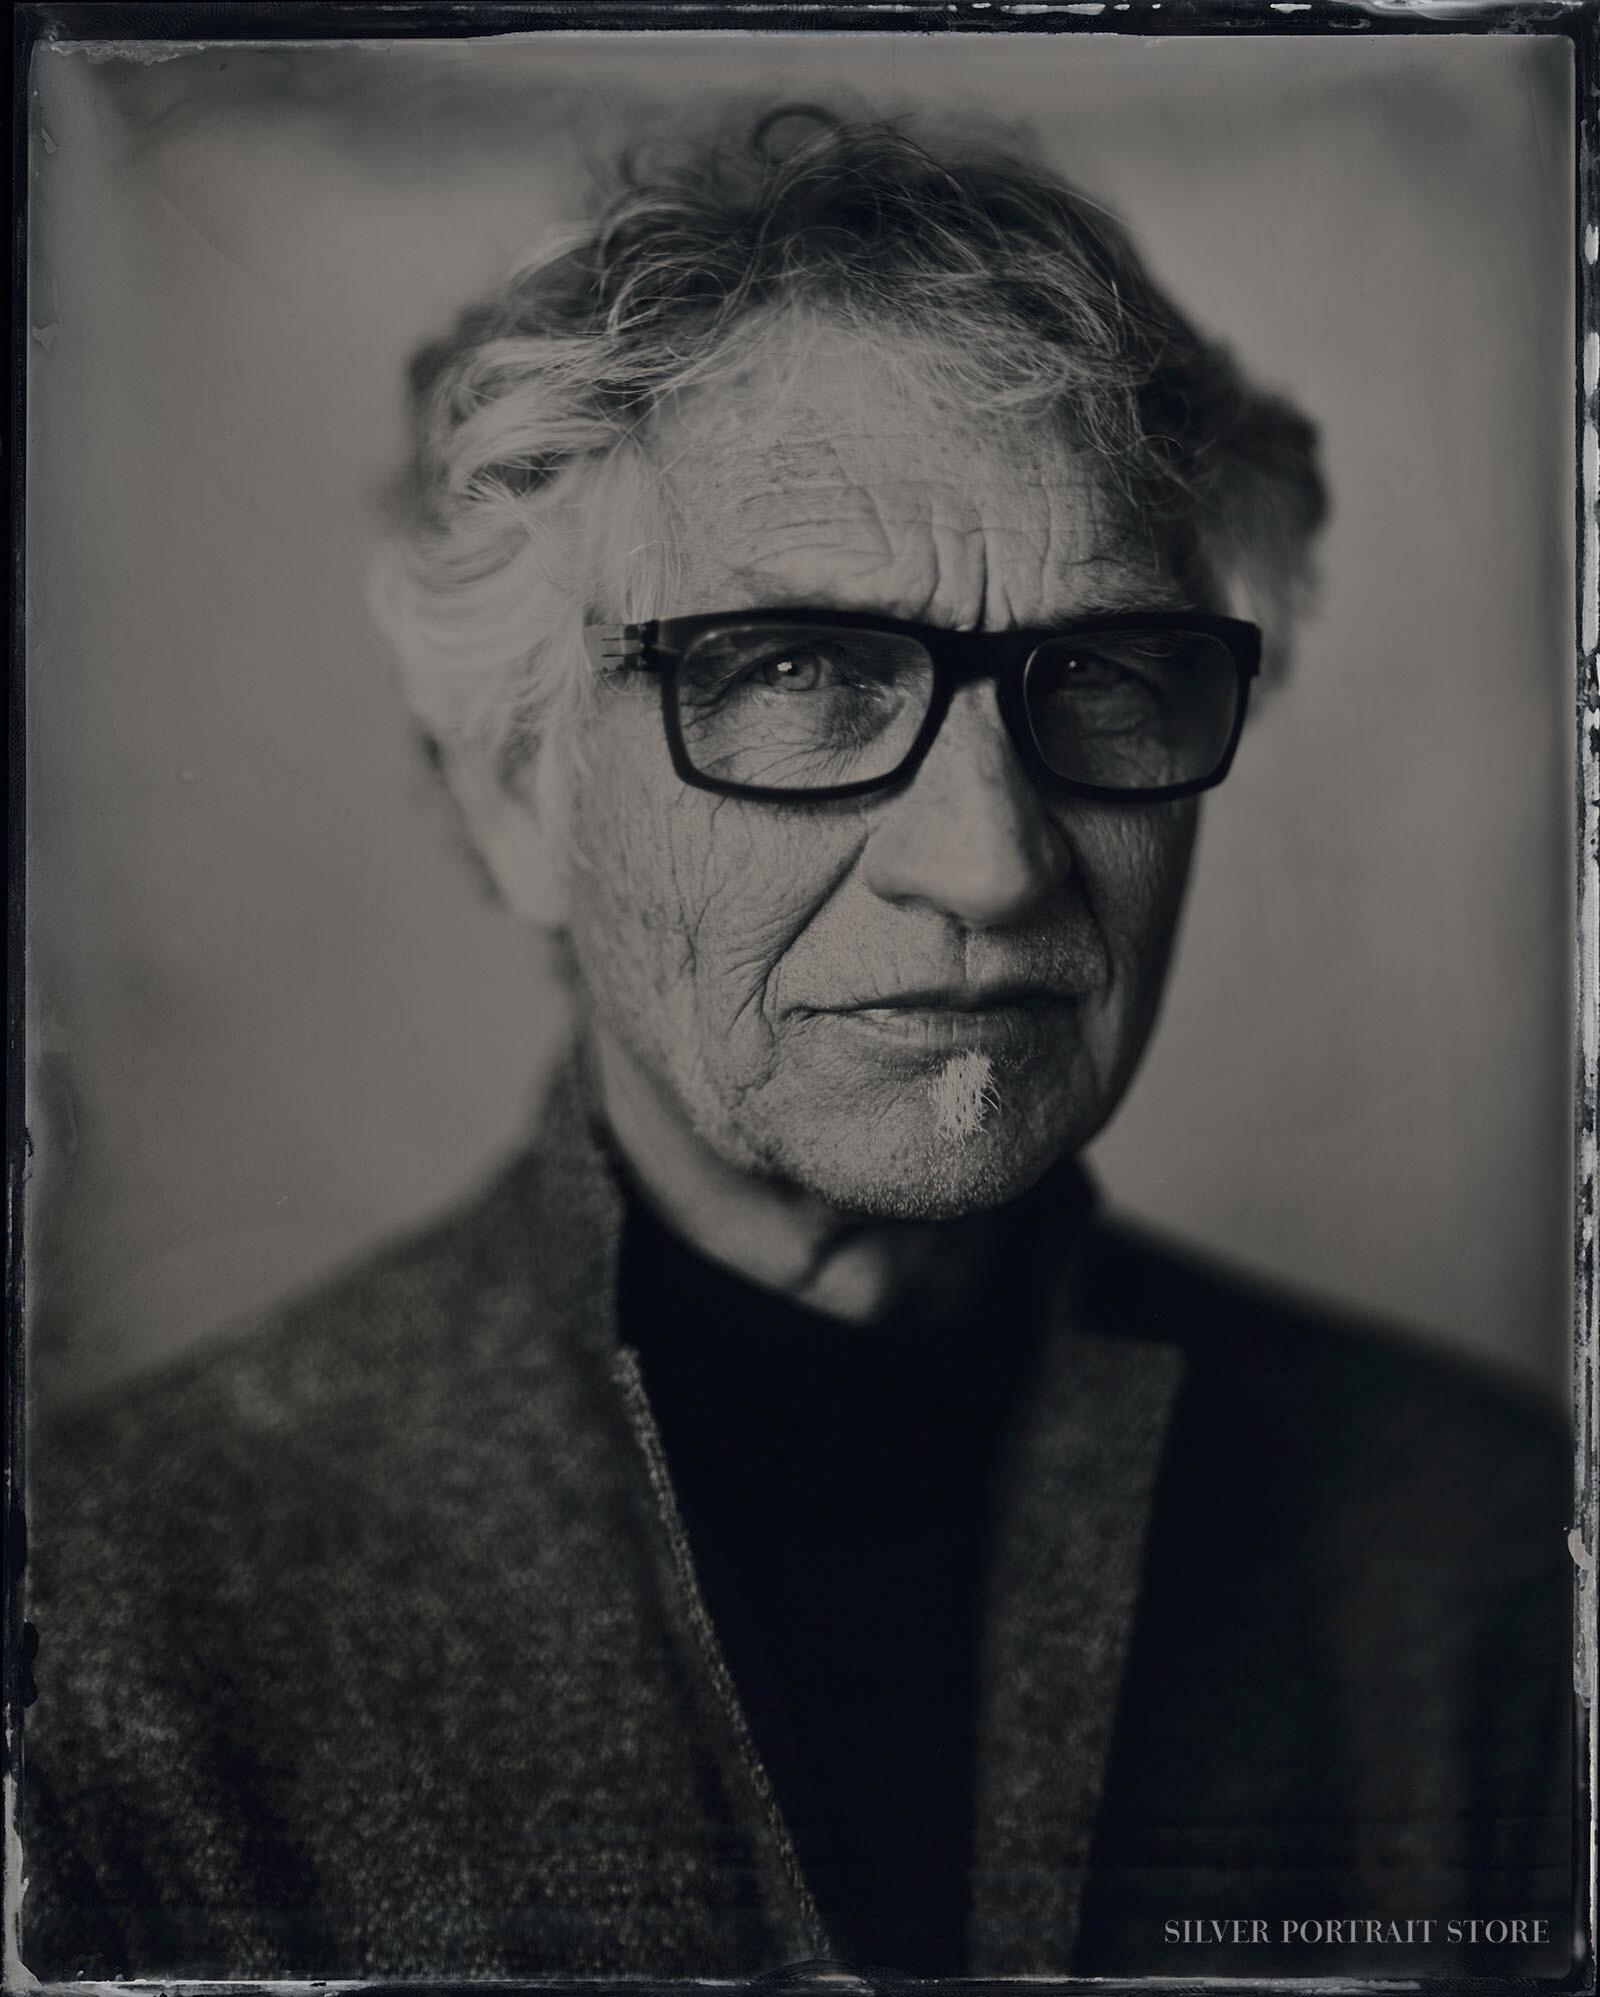 Gijs-Silver Portrait Store-Scan from Wet plate collodion-Tintype 20 x 25 cm. Lokatie PTA/Realisme Beurs.